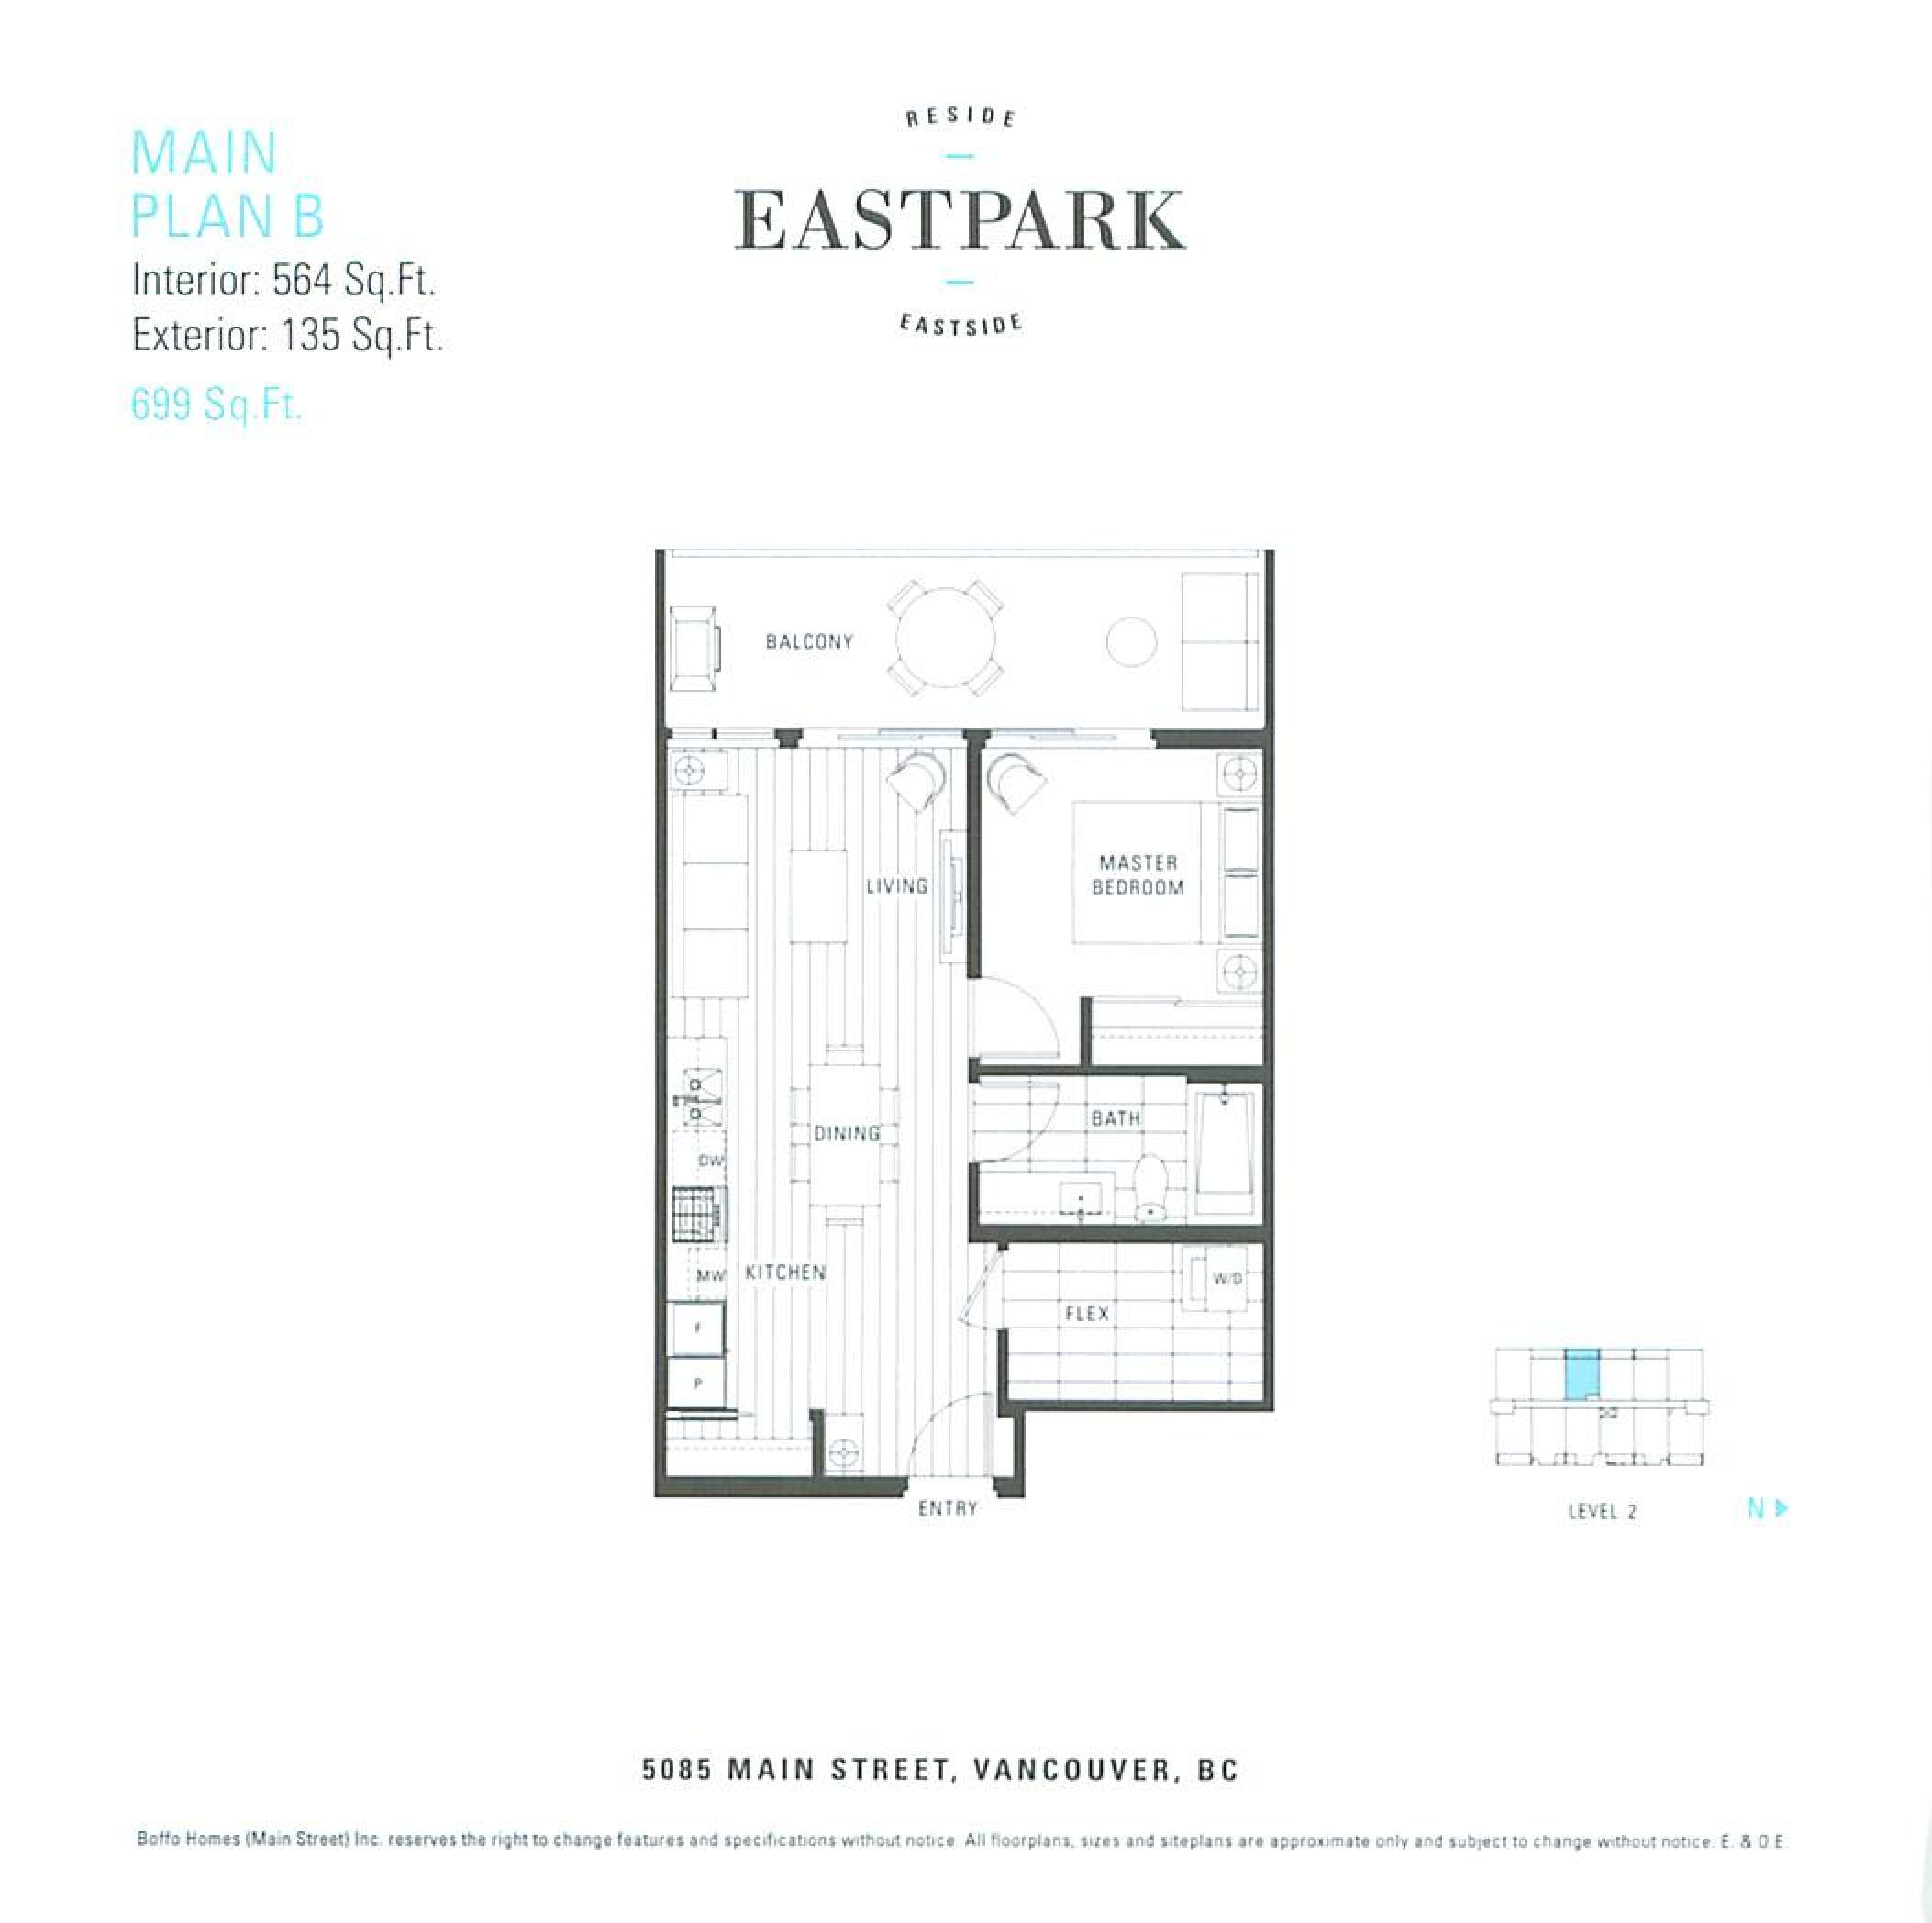 EastPark Main Smaller Floor Plans Mike Stewart-page-002